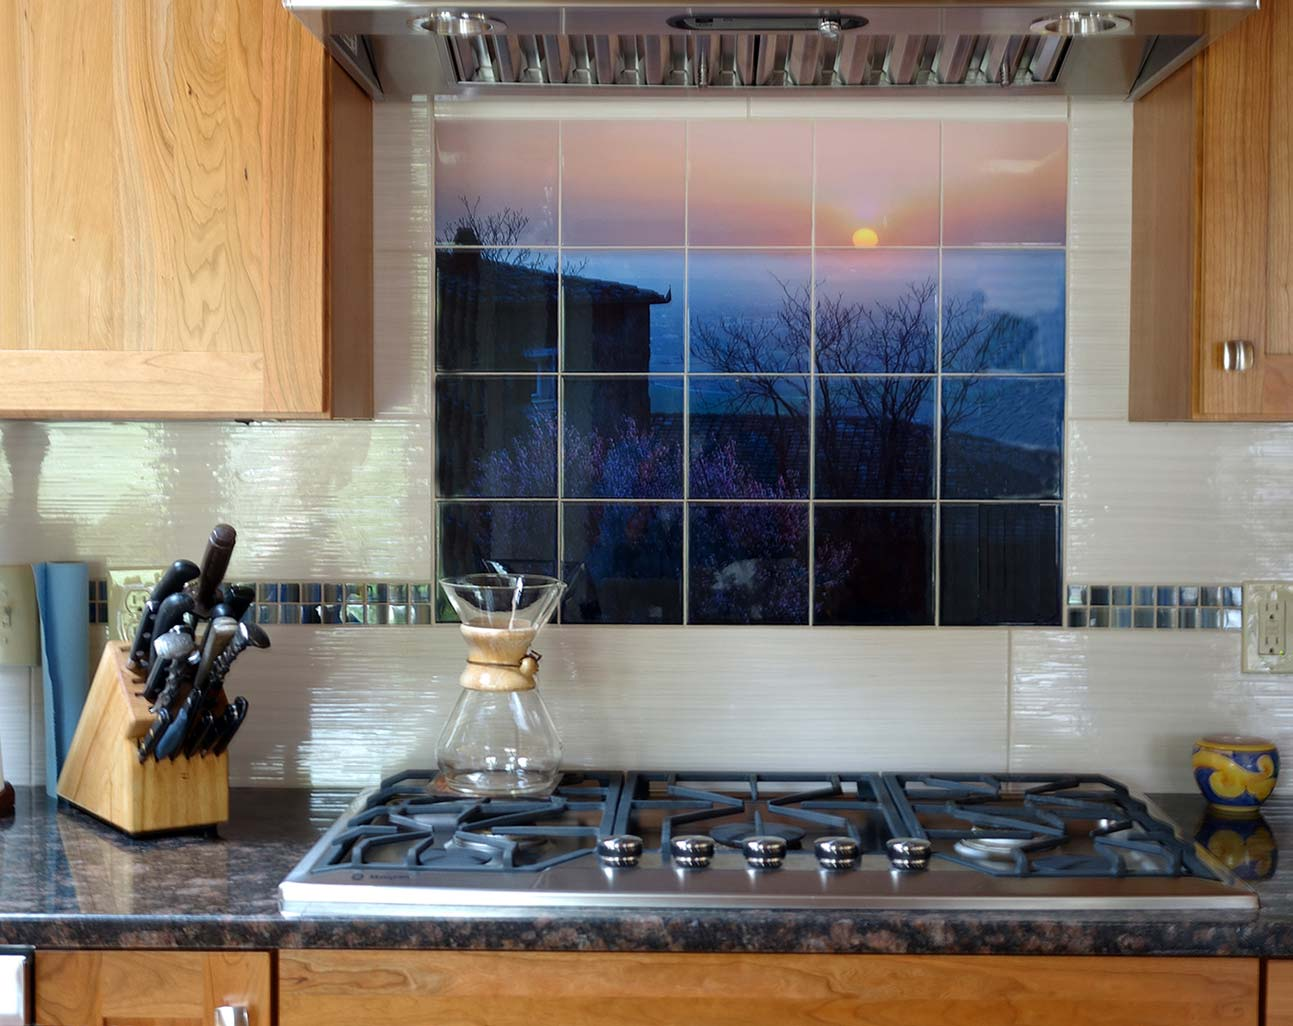 Kitchen Backsplash Italian Scene - Images In Tile USA